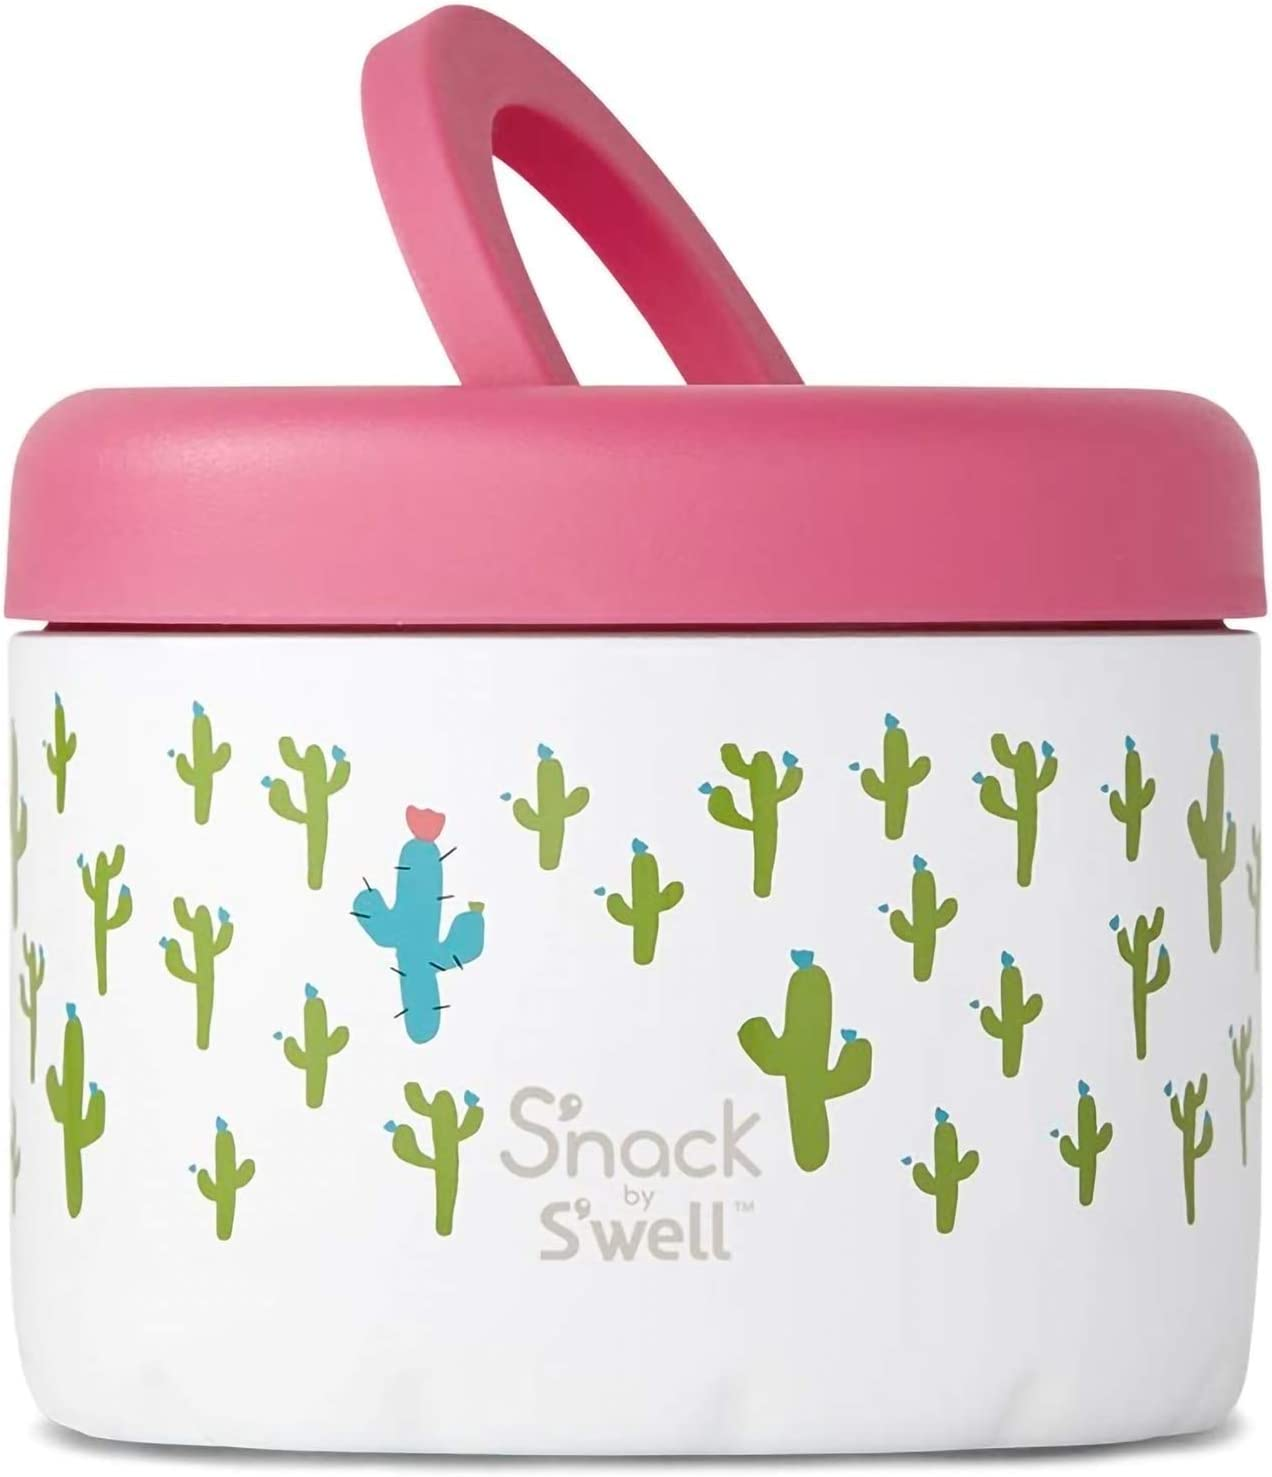 S'well Container-24 Fl Oz-Looking Sharp-Double-Layered Stainless Steel Food Container, 24oz